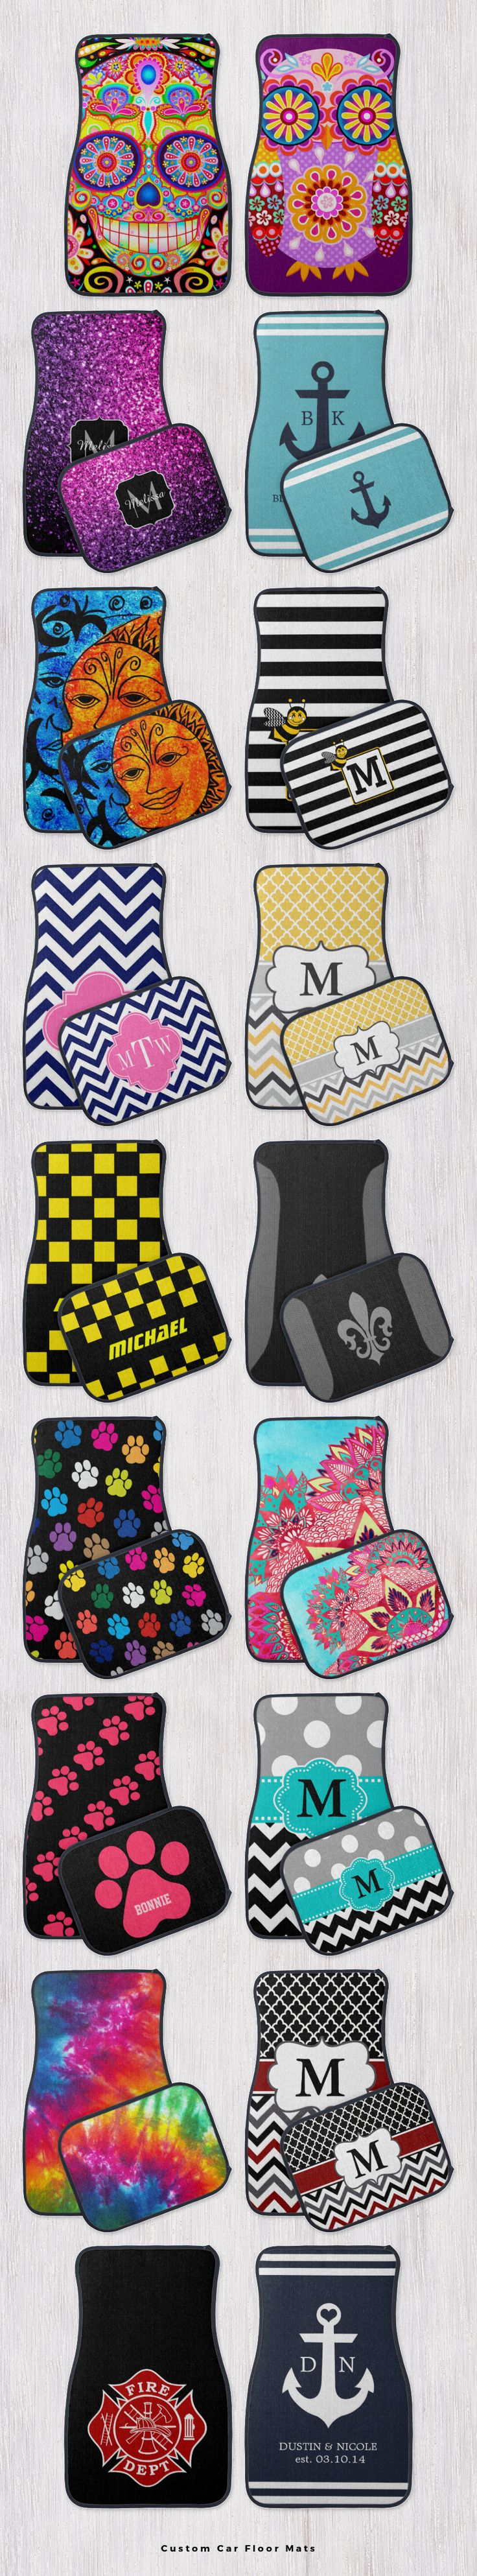 Design your own custom car floor mats with your initials, monogram, name or any…